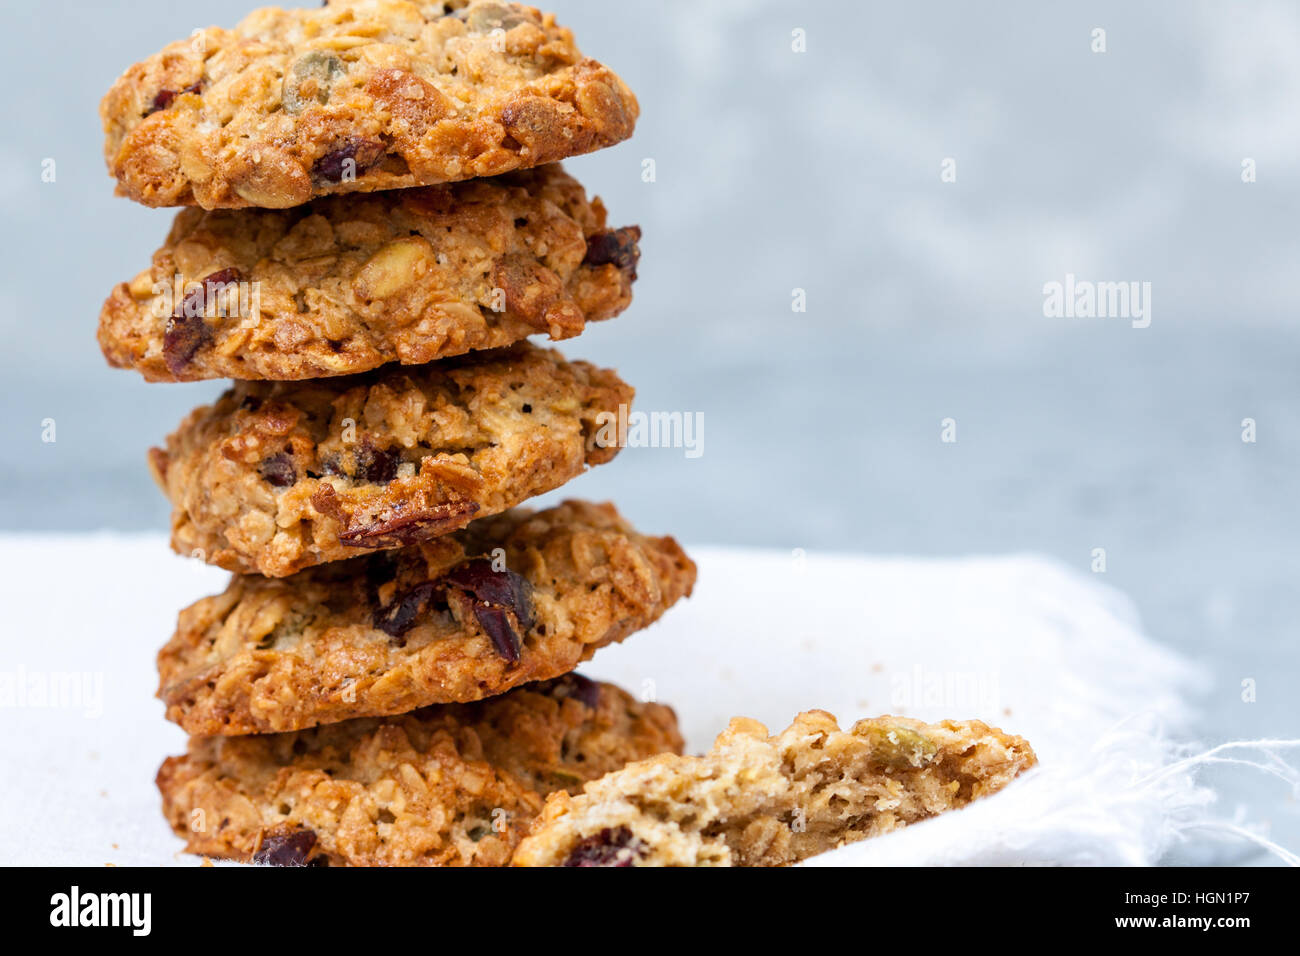 Homemade cookies with berries and seeds. - Stock Image